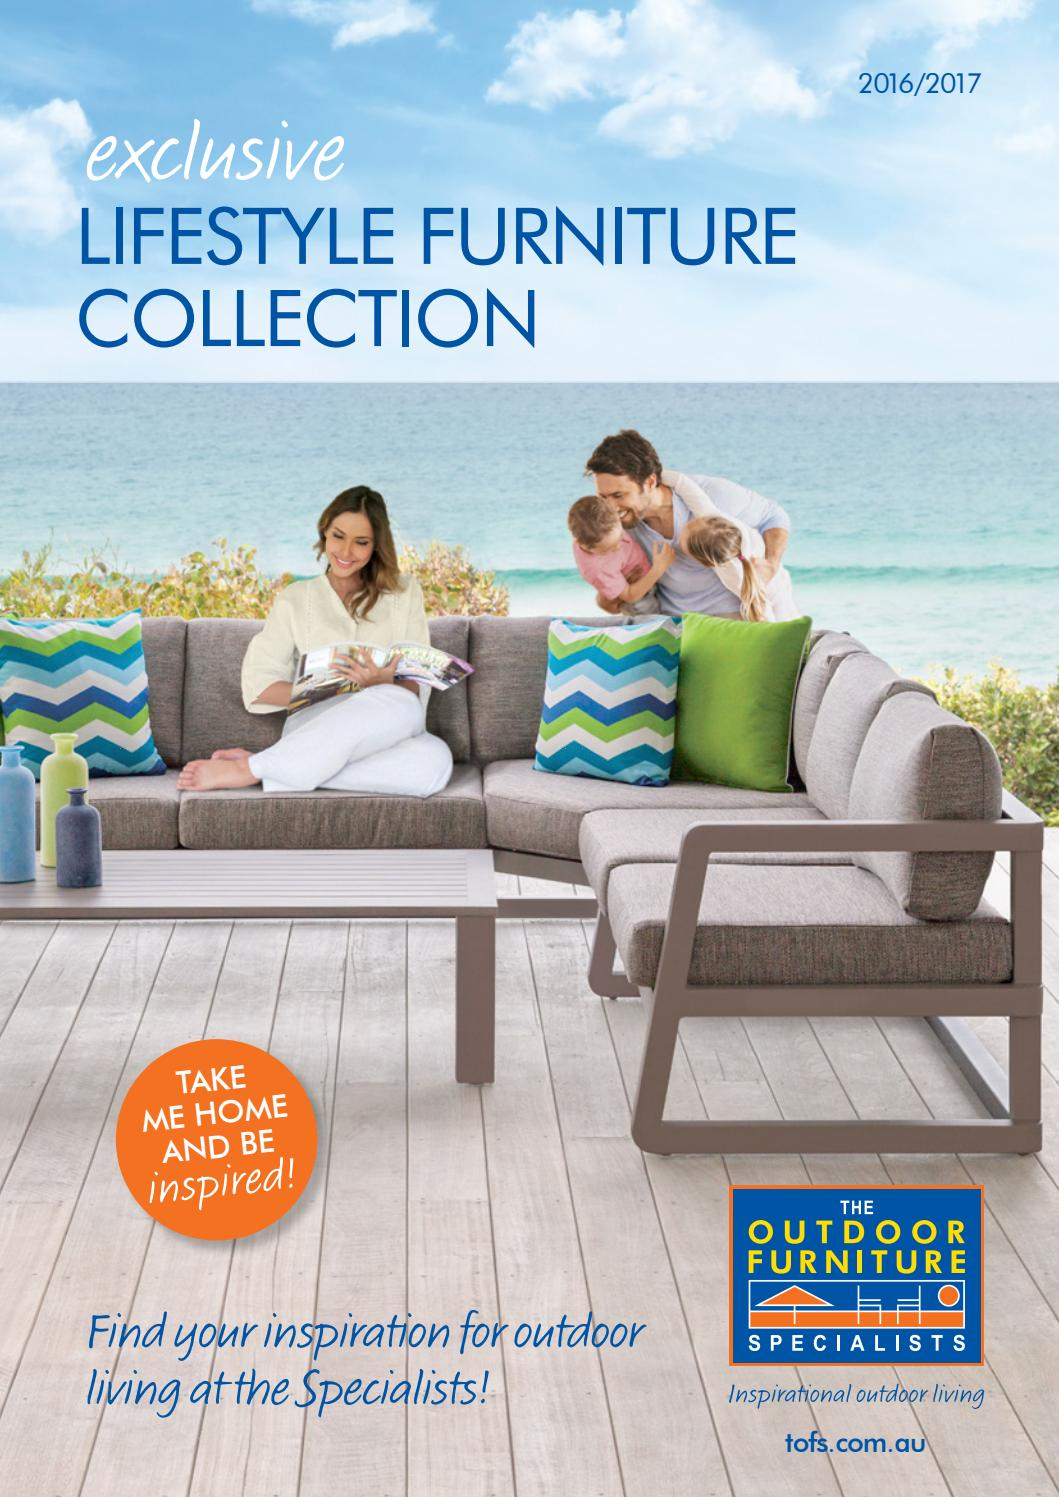 The outdoor furniture specialists exclusive lifestyle furniture collection 2016 2017 by tofs the outdoor furniture specialists issuu